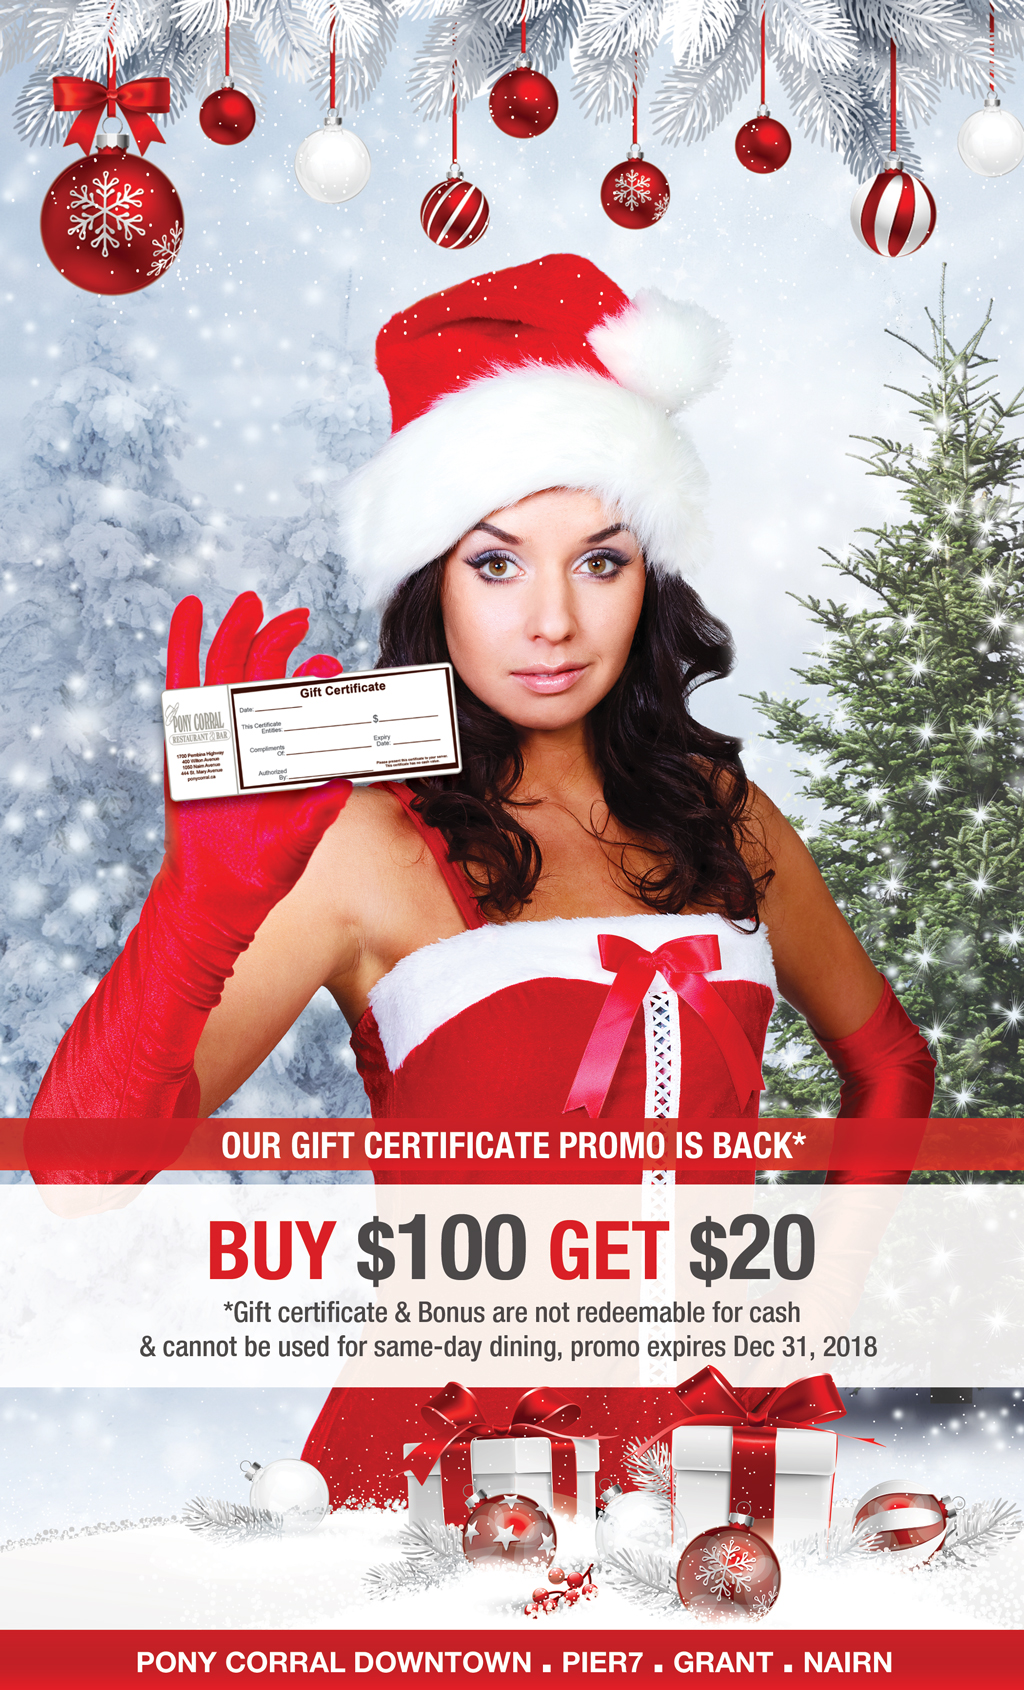 Holiday - Christmas - Gift Certificate - Gift Card